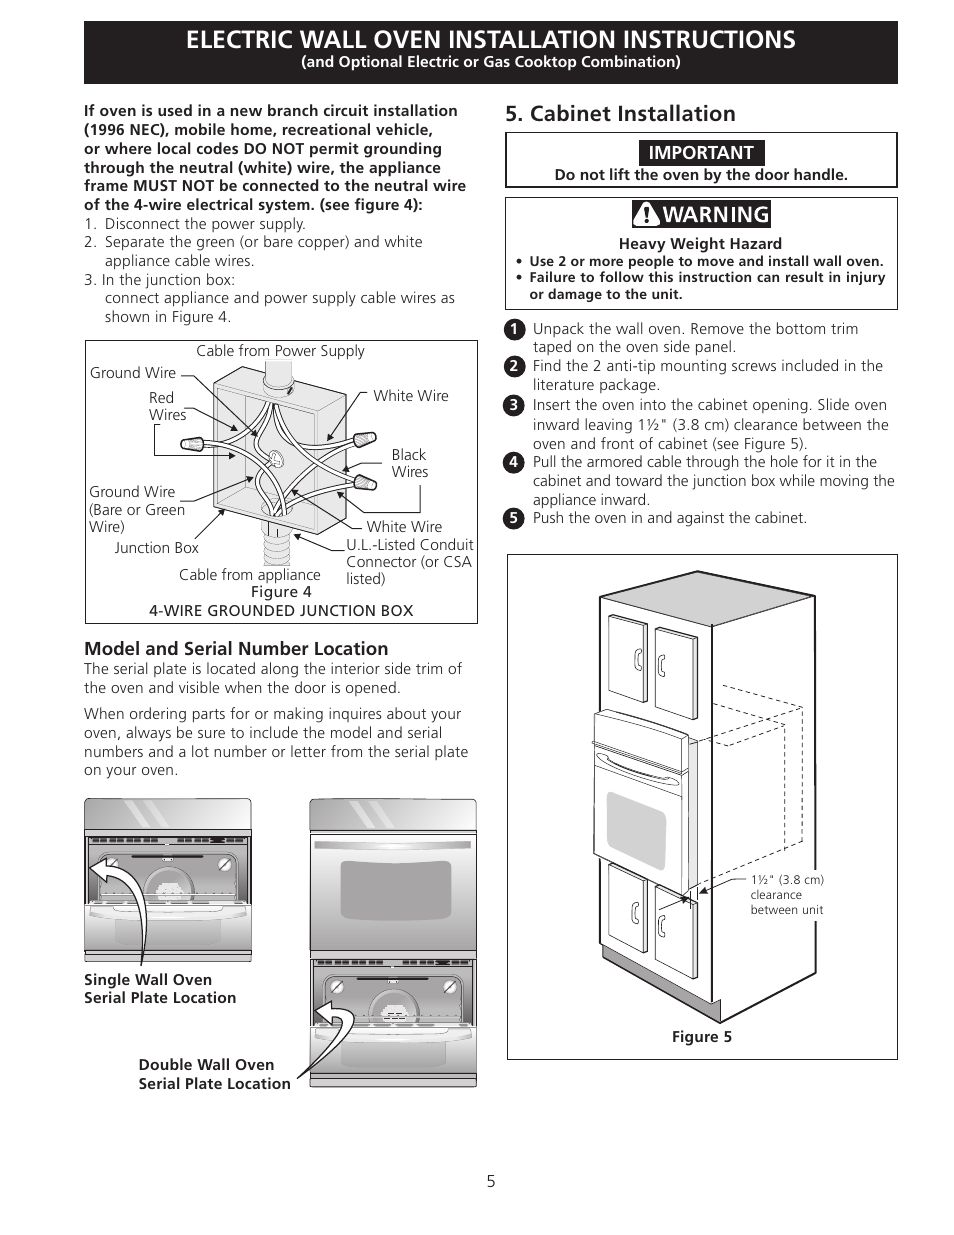 Outdoor Oven Cabinet Kit Manual Guide